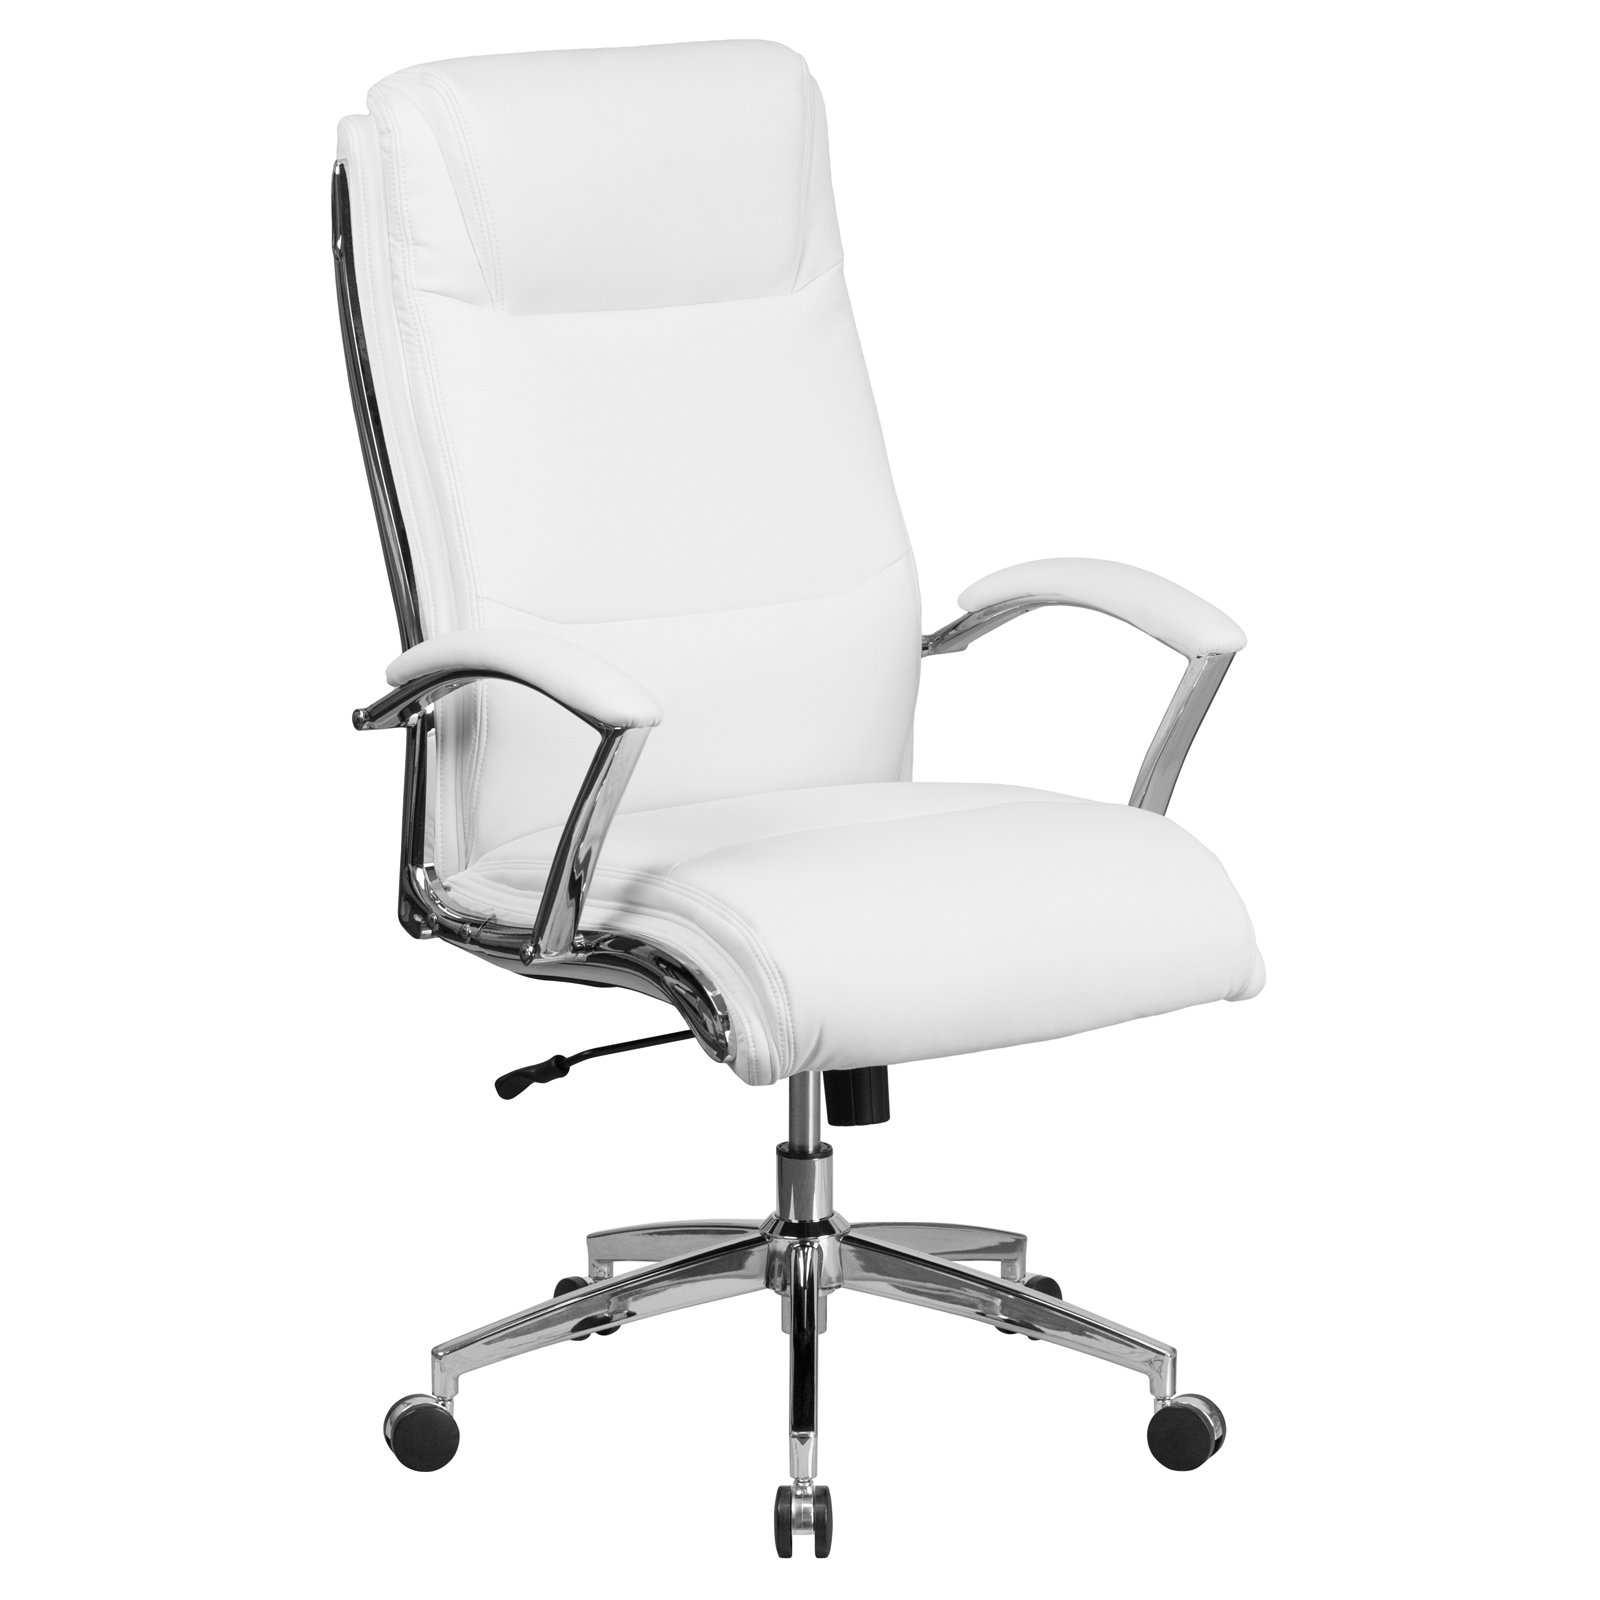 white leather executive chair. Flash Furniture High Back Designer White Leather Executive Swivel Office Chair With Padded Arms And Chrome